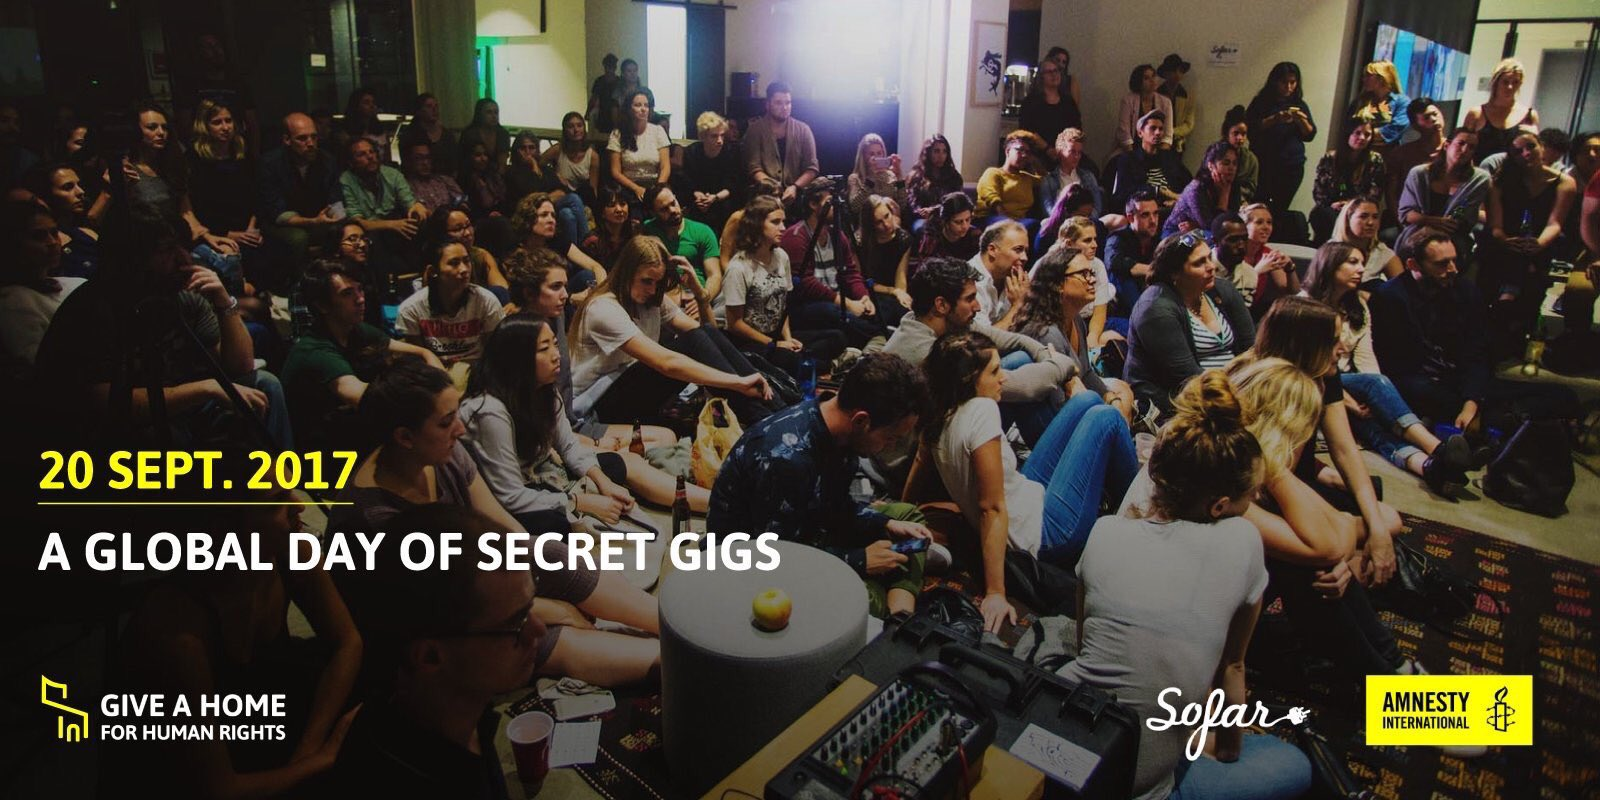 Tonight we join 1000+ bands & musicians to play an intimate show to support world refugees #GiveAHome #beirut @amnesty @sofarsounds https://t.co/iZydFmJXvF